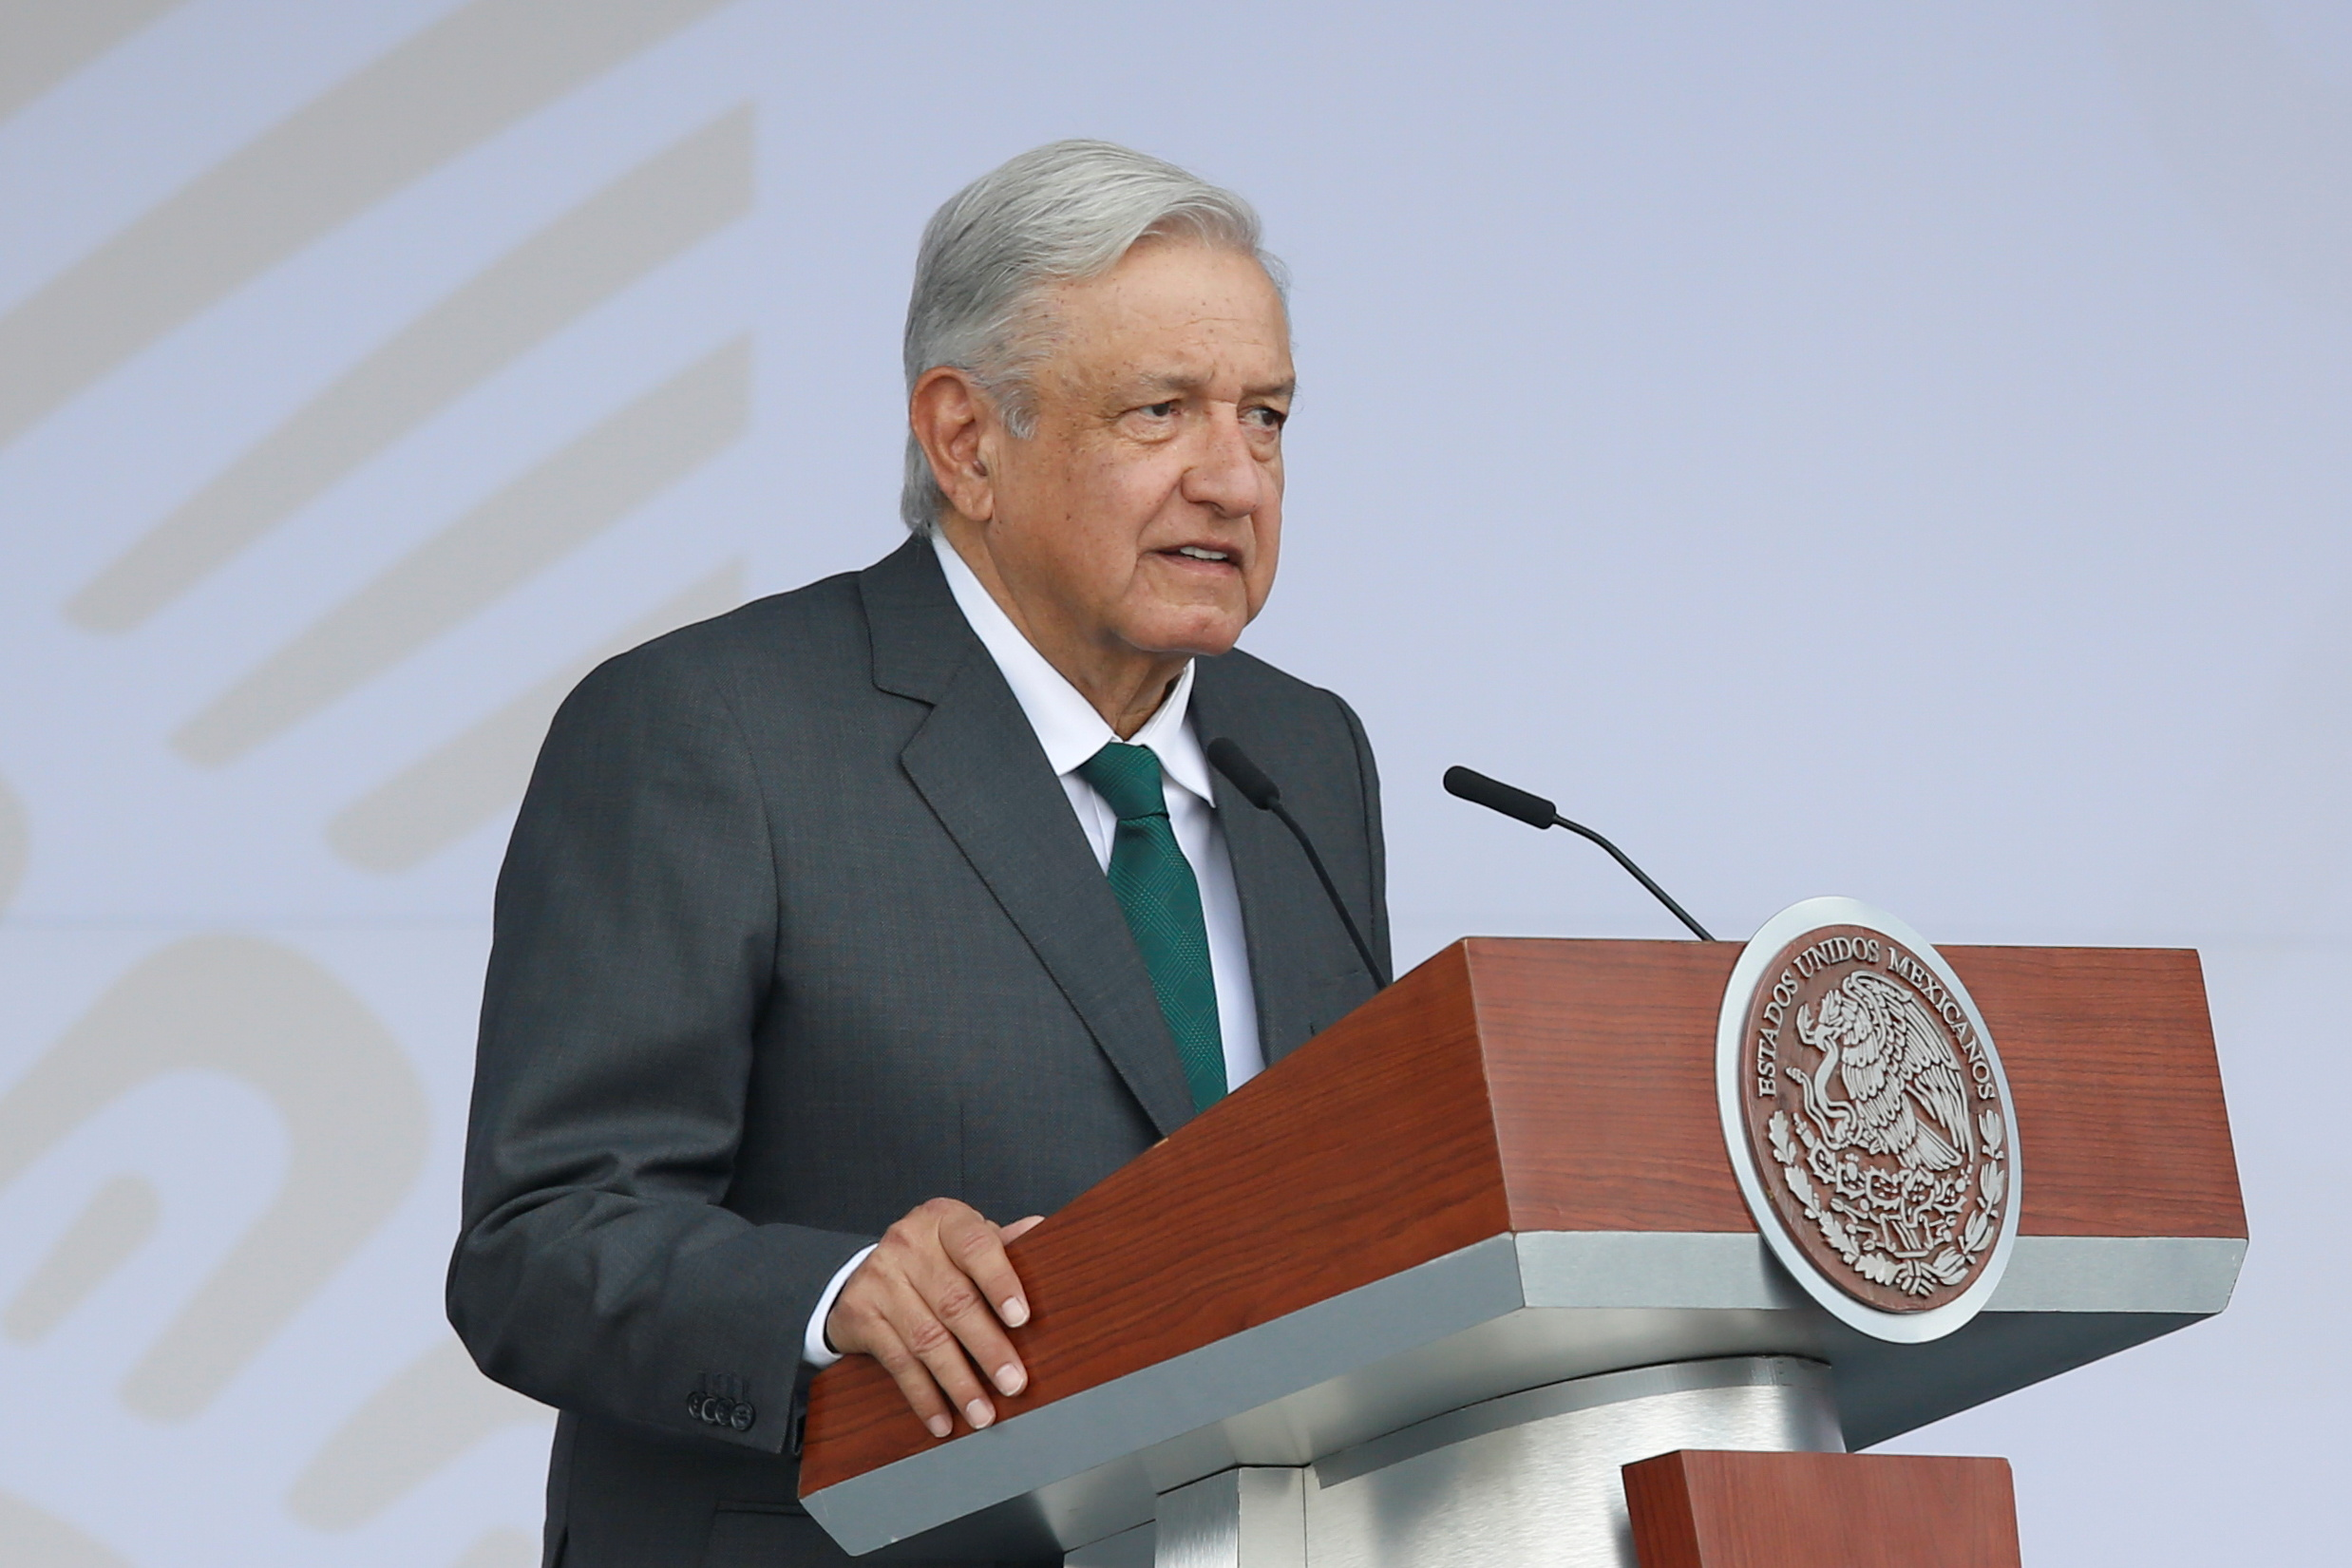 Mexico's President Andres Manuel Lopez Obrador speaks before the traditional military parade to mark the bicentennial of Mexico's Independence from Spain, and ahead of the summit of the Community of Latin American and Caribbean States (CELAC), at the Zocalo square in Mexico City, Mexico September 16, 2021. REUTERS/Gustavo Graf